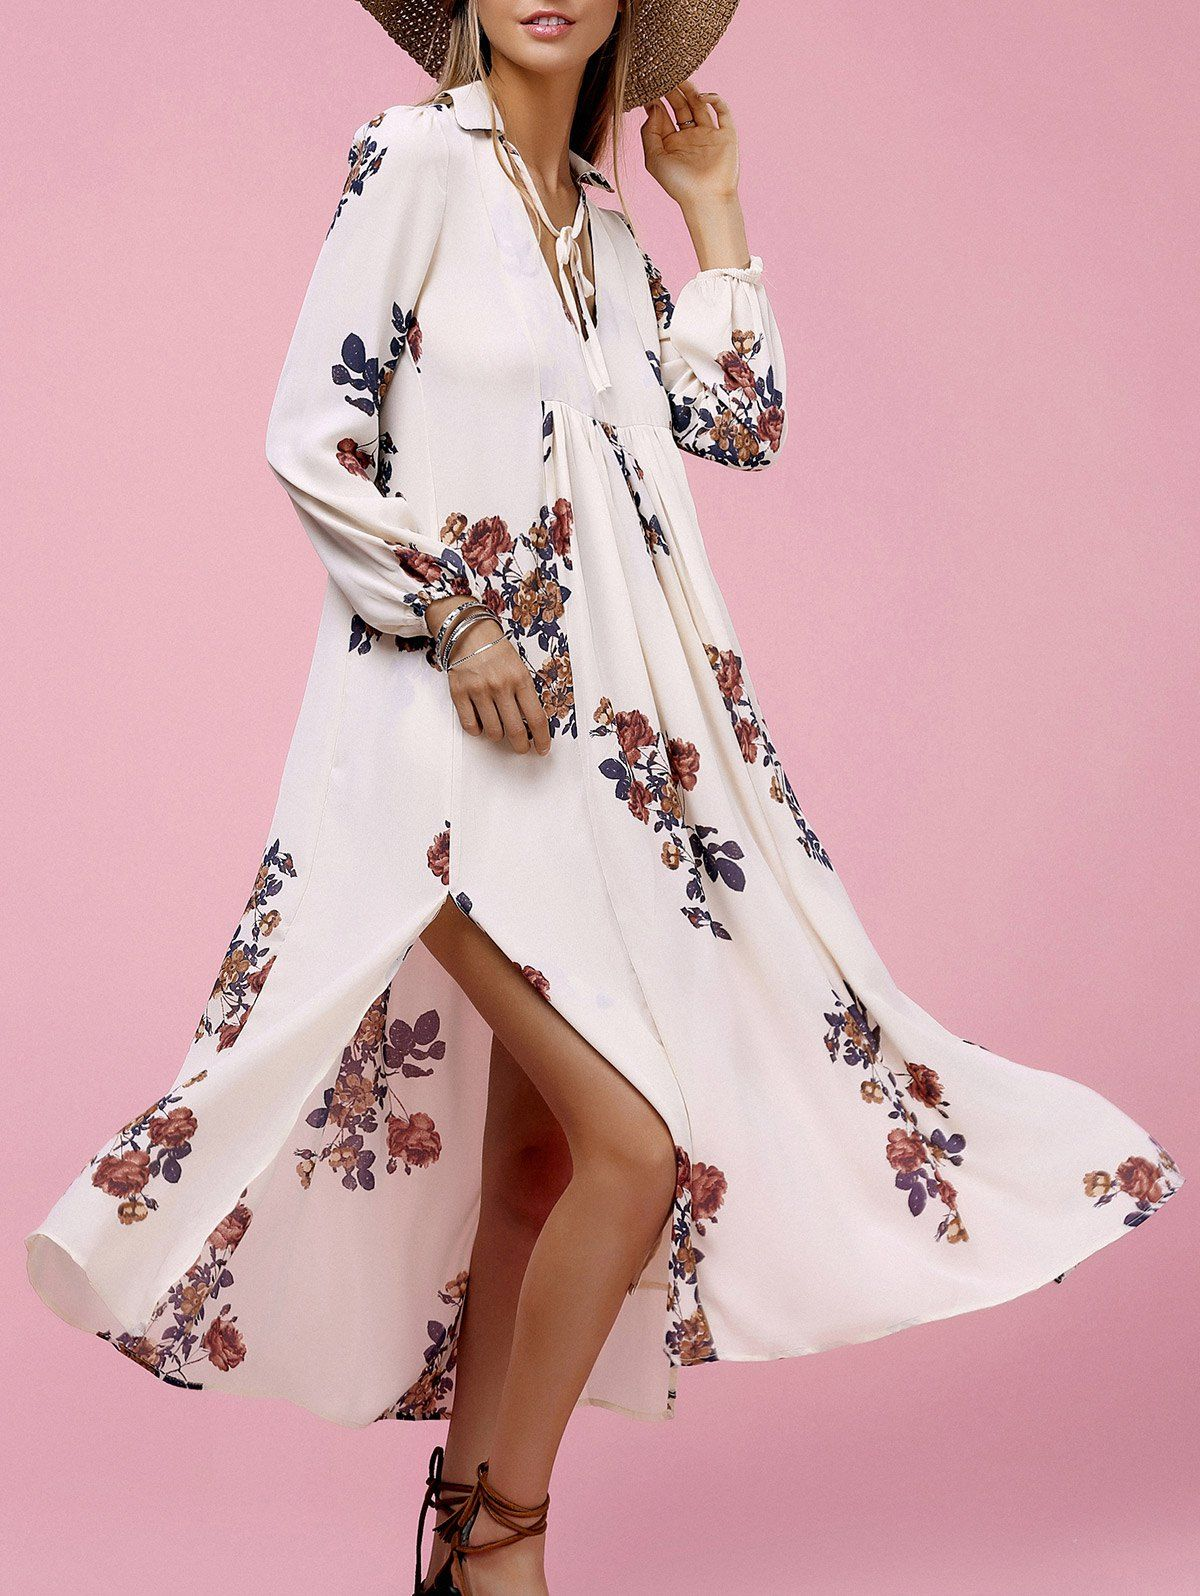 High Slit Floral Midi Dress | Pinterest | Quiero, Zapatos y Ropa